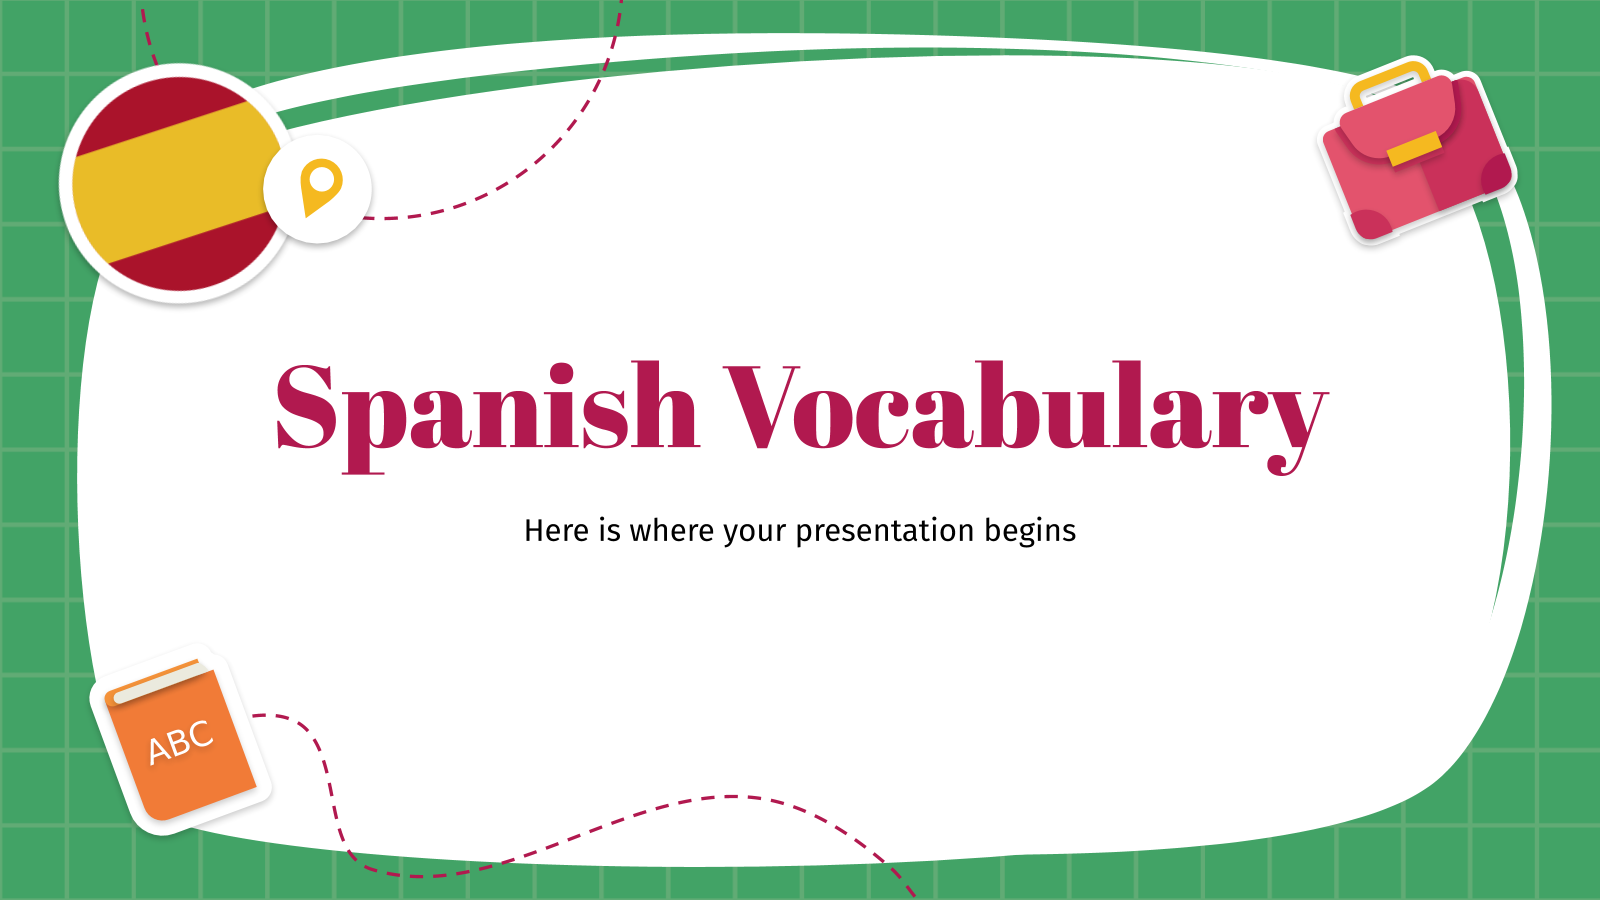 Spanish Vocabulary Workshop presentation template